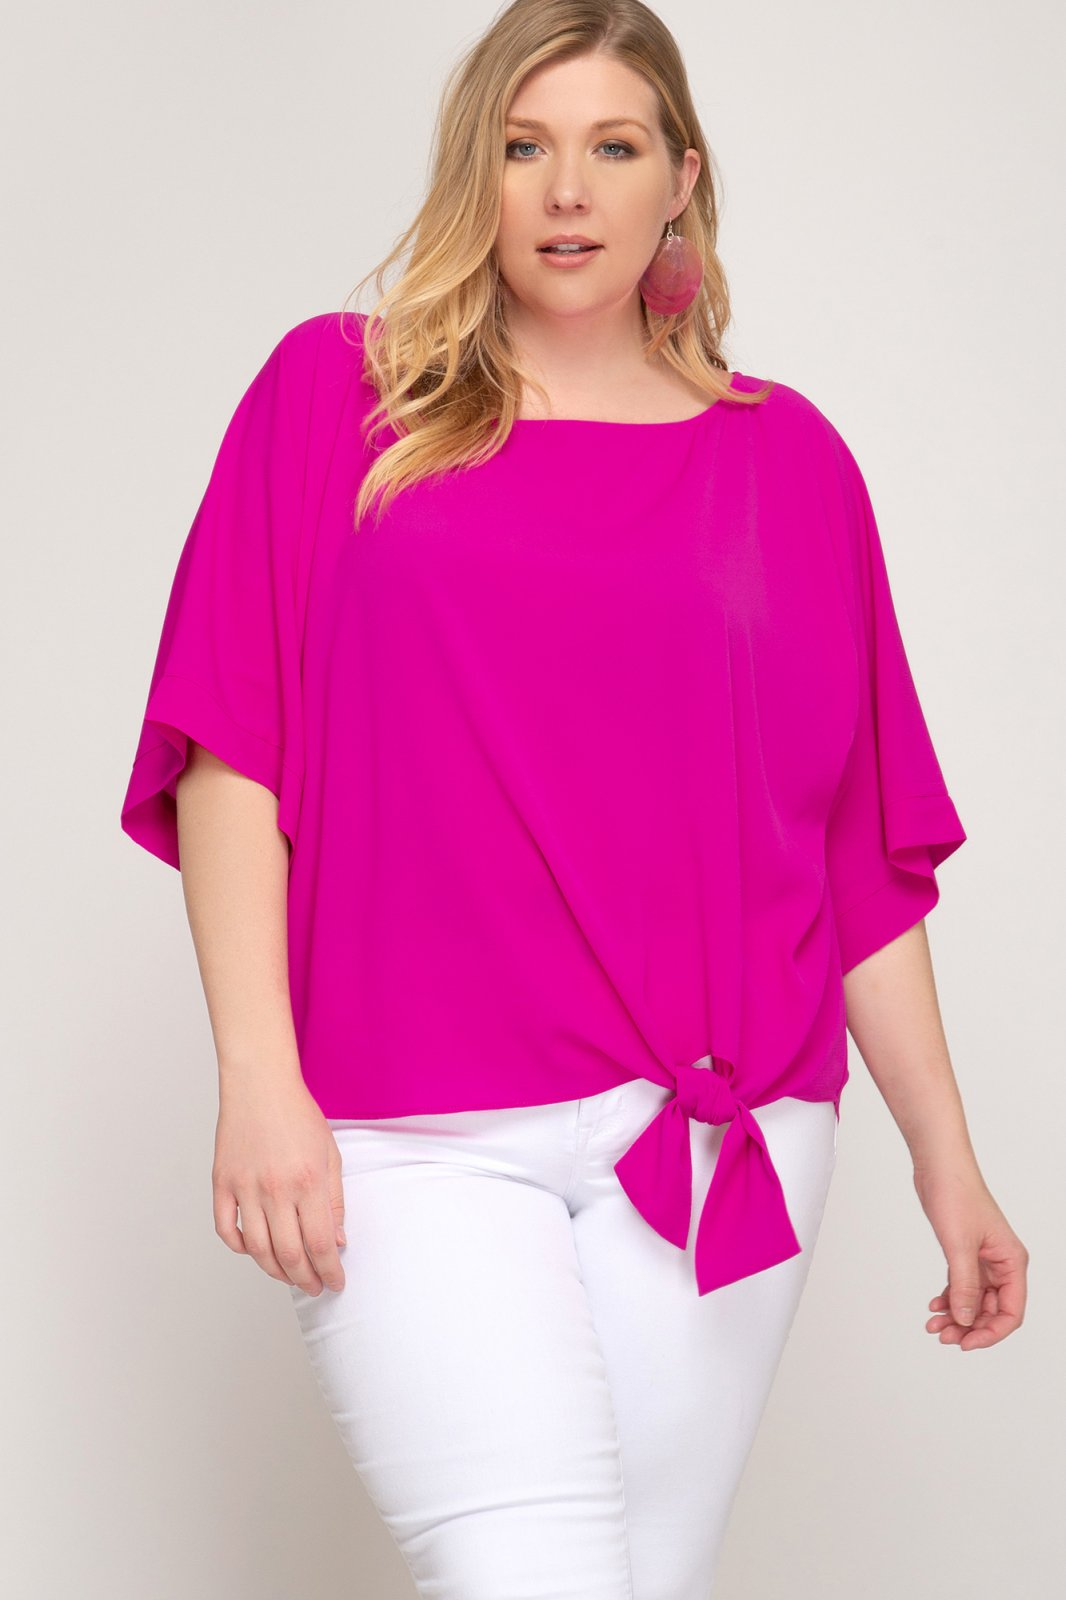 Kimono Tie Front Top (Plus Sizing) from She & Sky